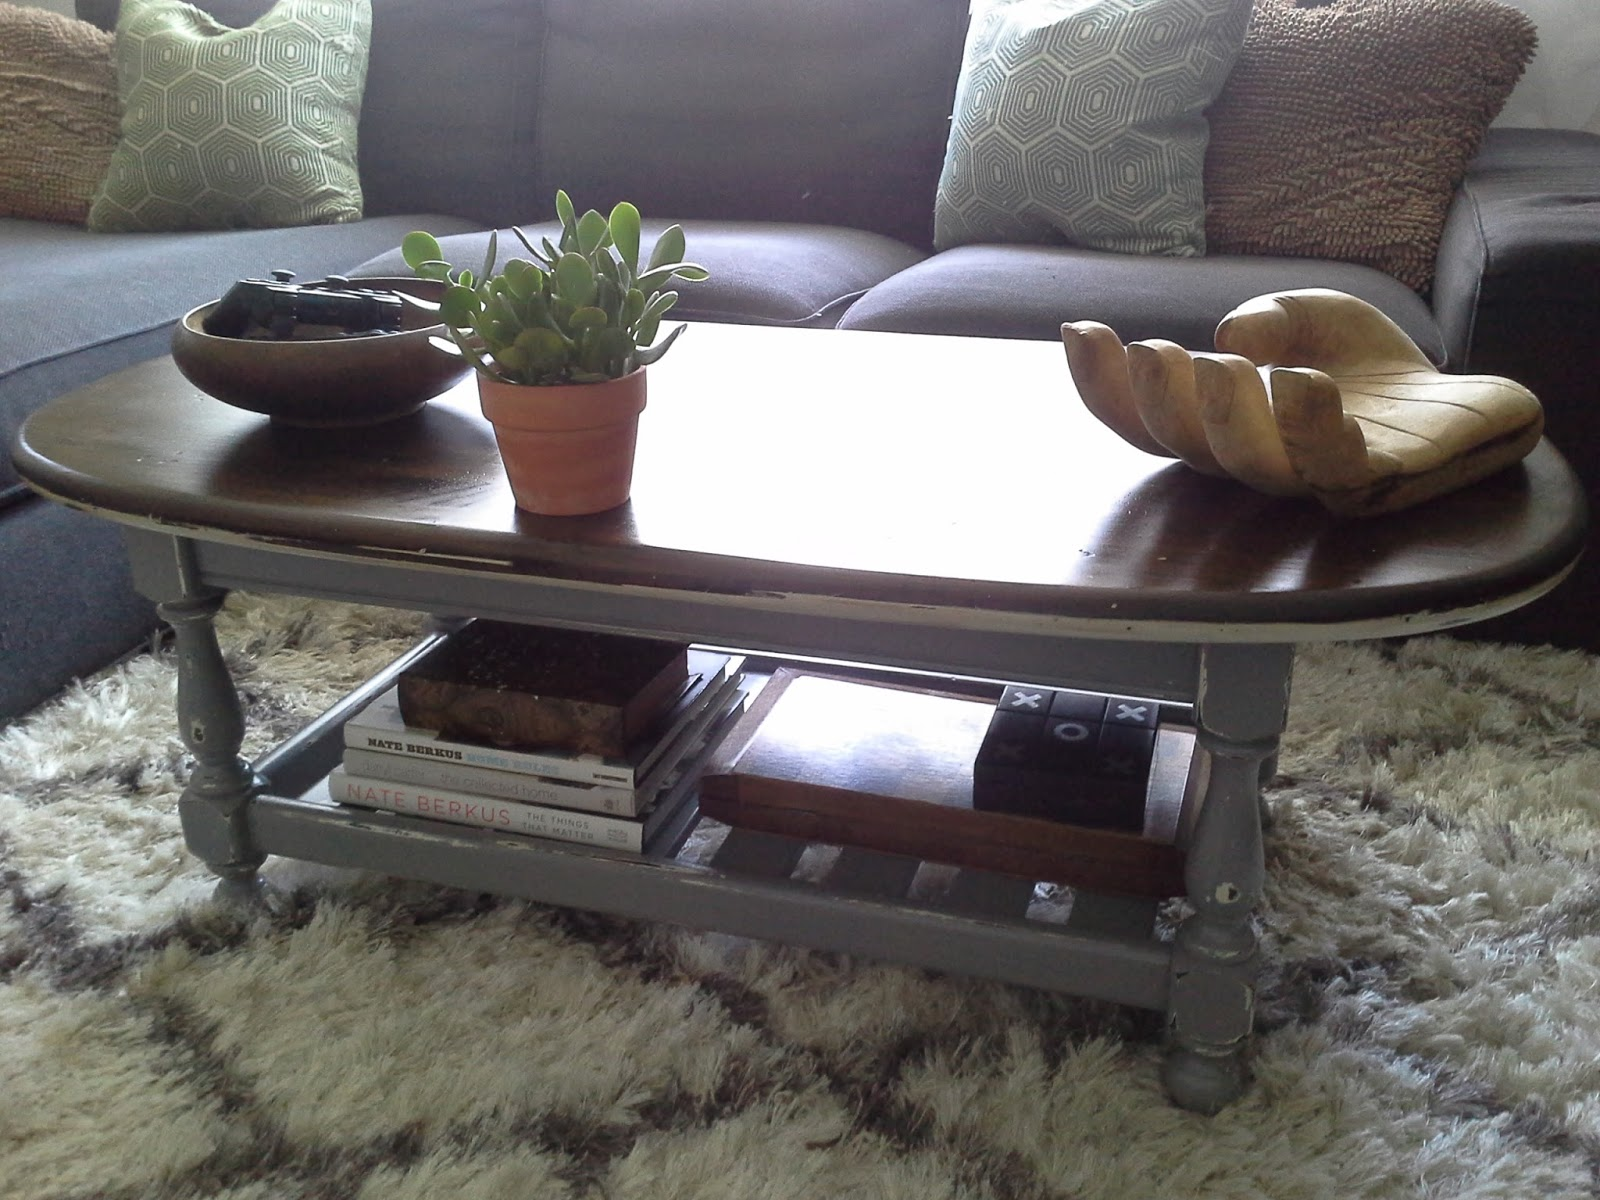 Lilly's Home Designs: Ethan Allen Coffee Table Redesign